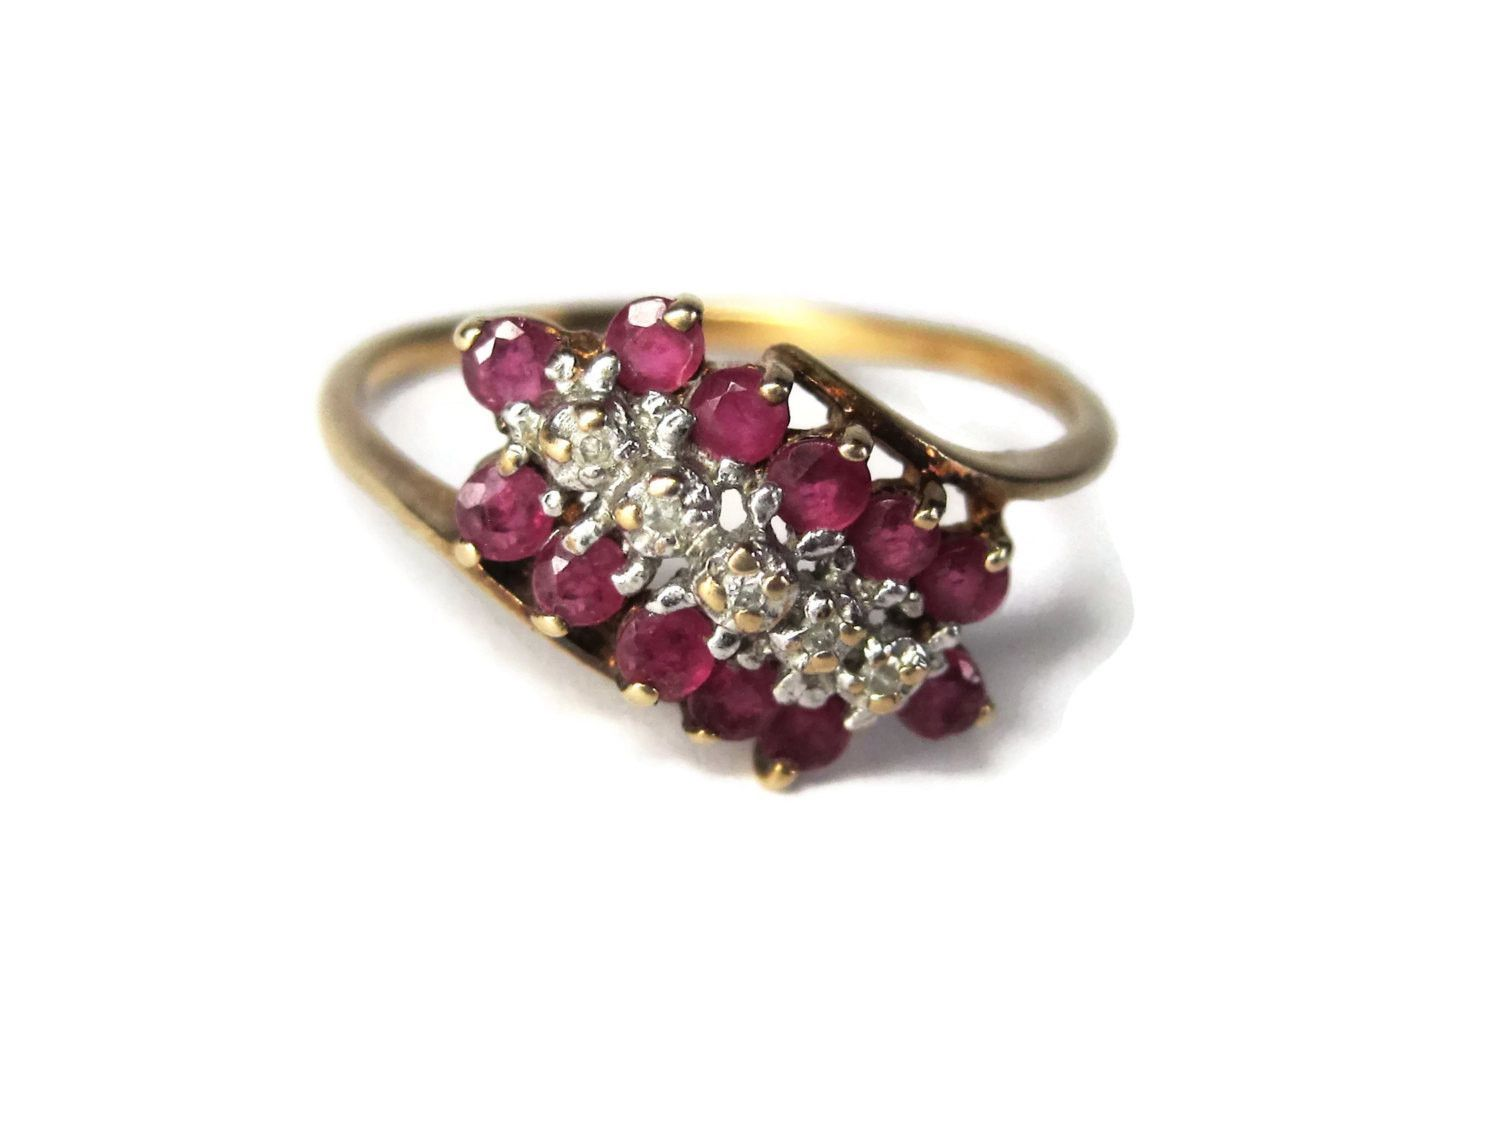 Vintage 10k Yellow Gold Ruby Diamond Cluster Ring Size 8 Cluster Ring Diamond Cluster Ring Ruby Diamond